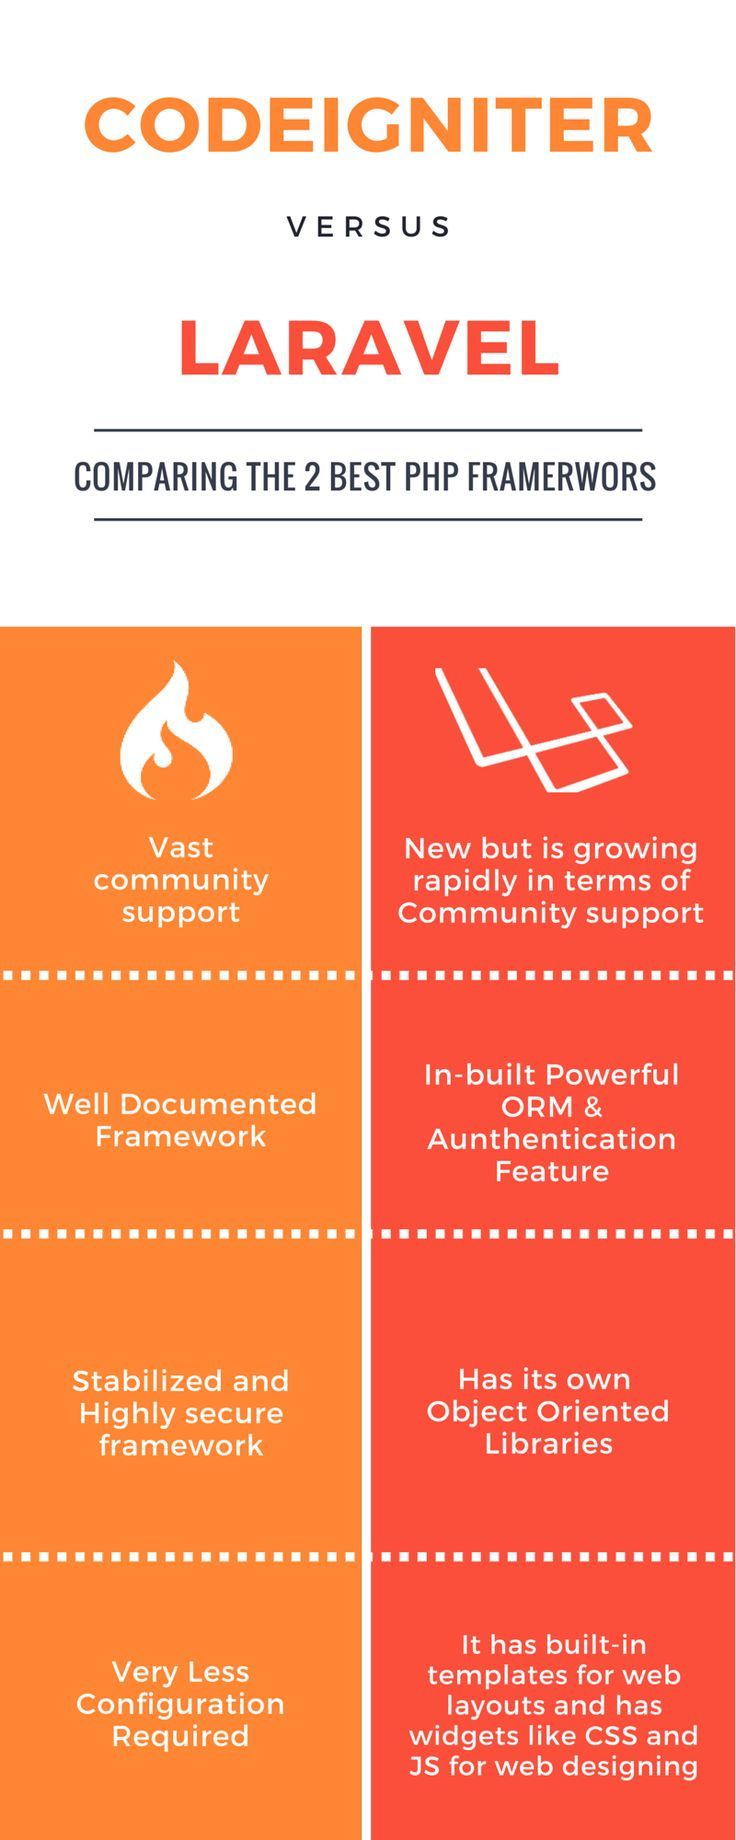 Find out difference between Laravel VS CodeIgniter open